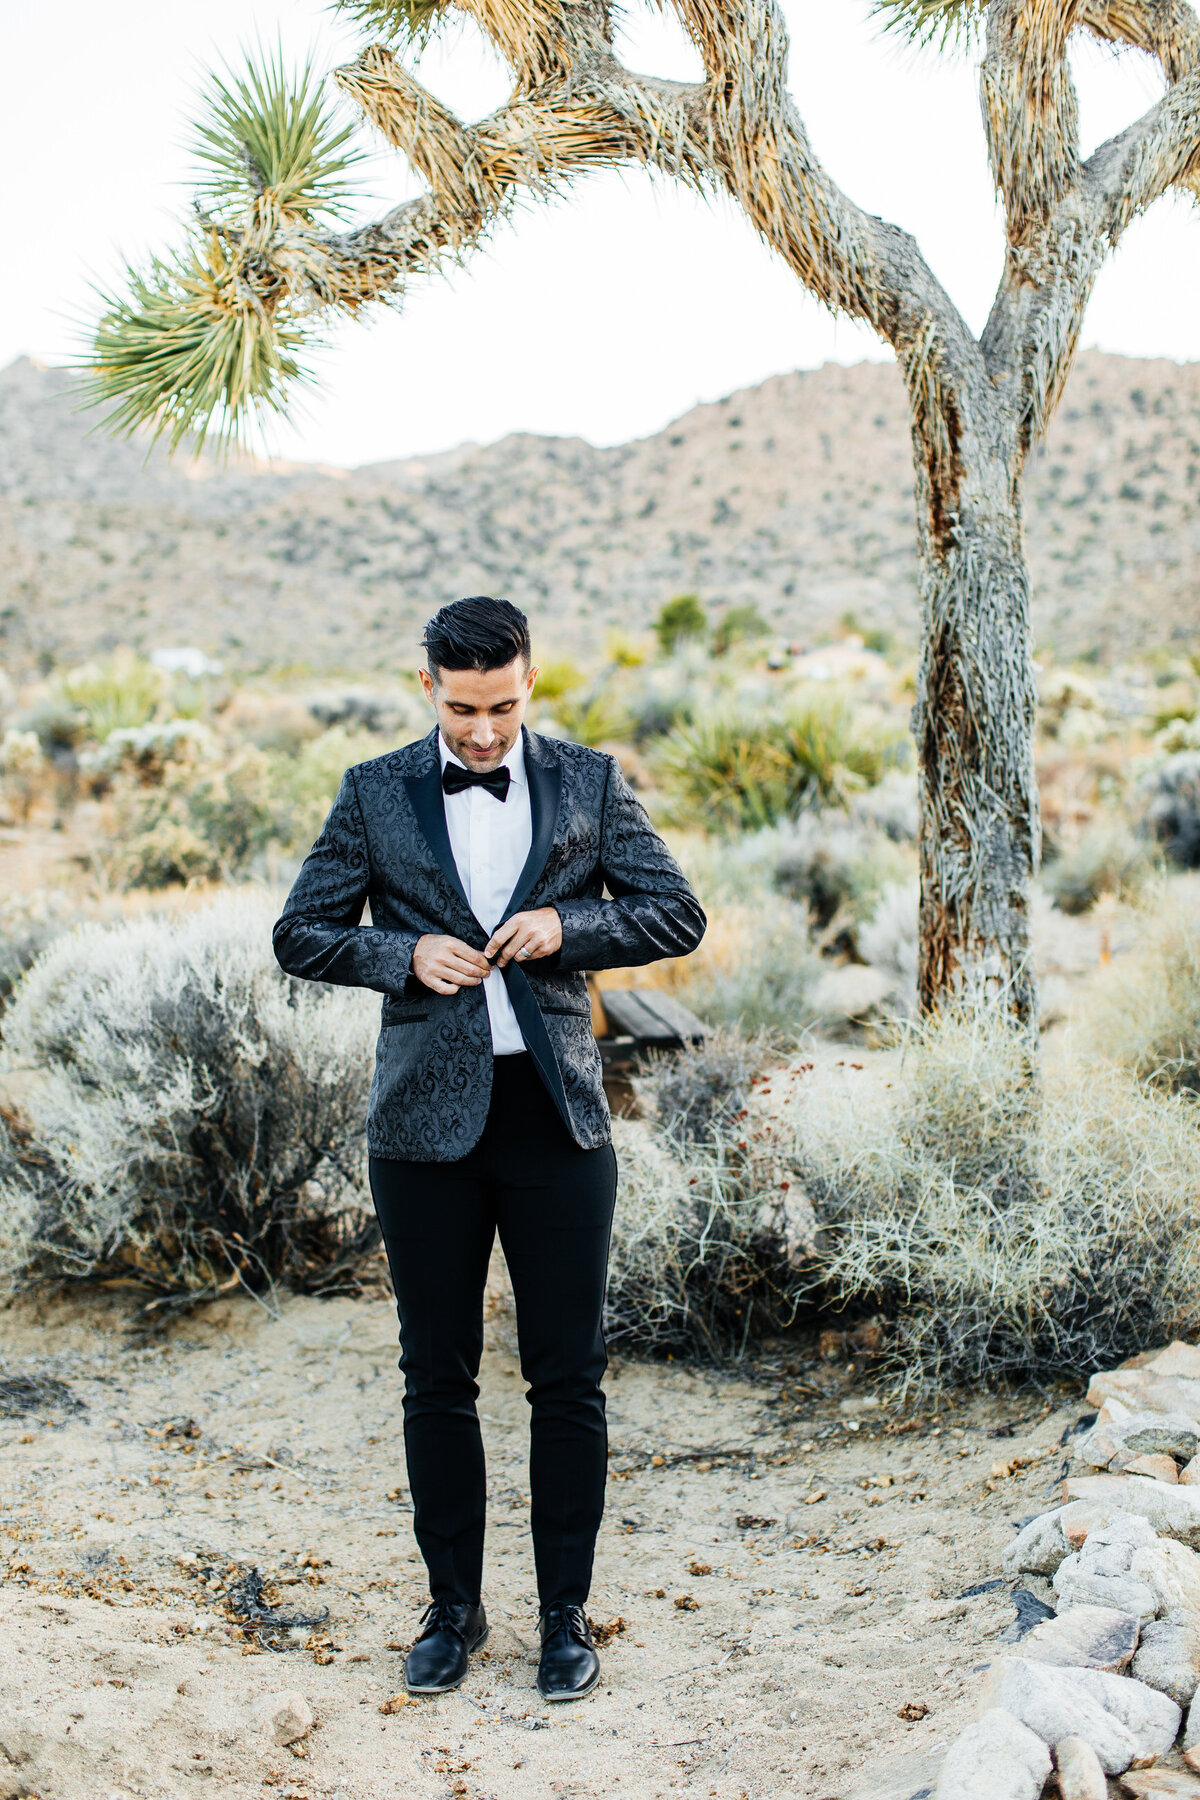 colorful-joshua-tree-elopement-inspiration-joshua-tree-wedding-photographer-palm-springs-wedding-photographer-erin-marton-photography-37